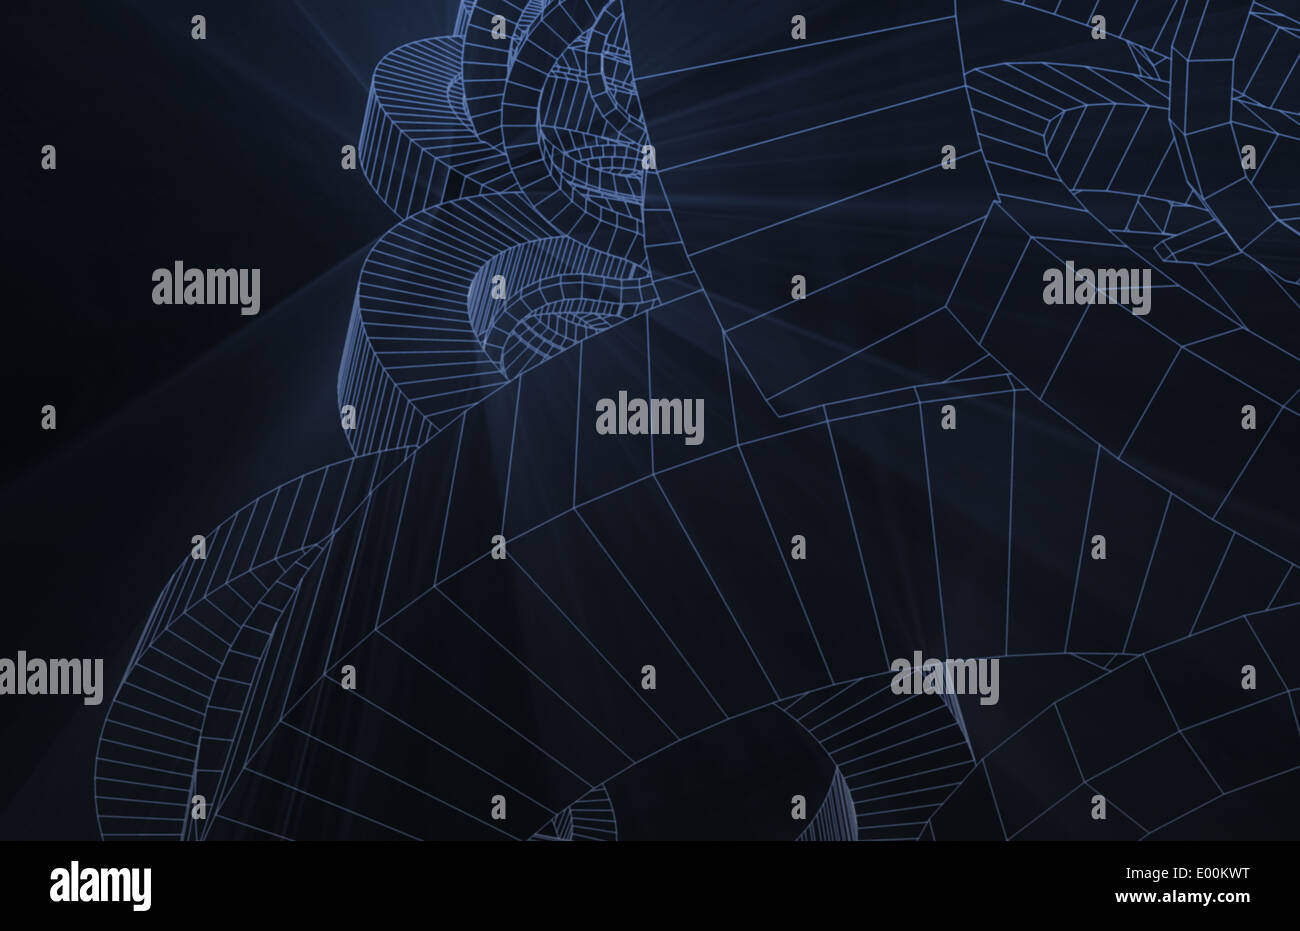 Design Schematics of Product or Machine as Art - Stock Image